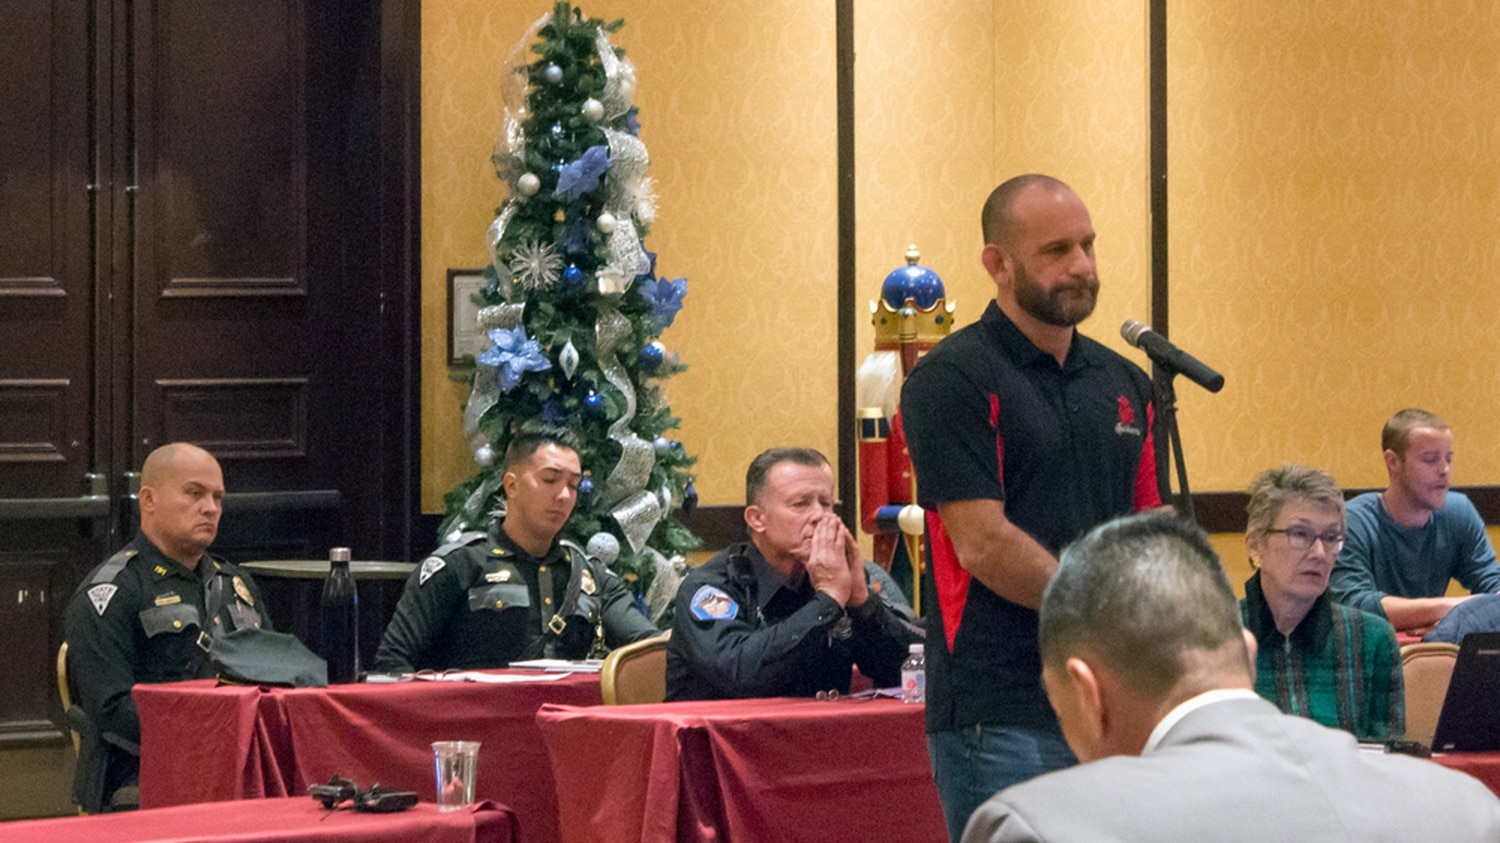 Greg Jackson makes a presentation to the New Mexico Law Enforcement Academy Board | Photo by Aaron Cantu